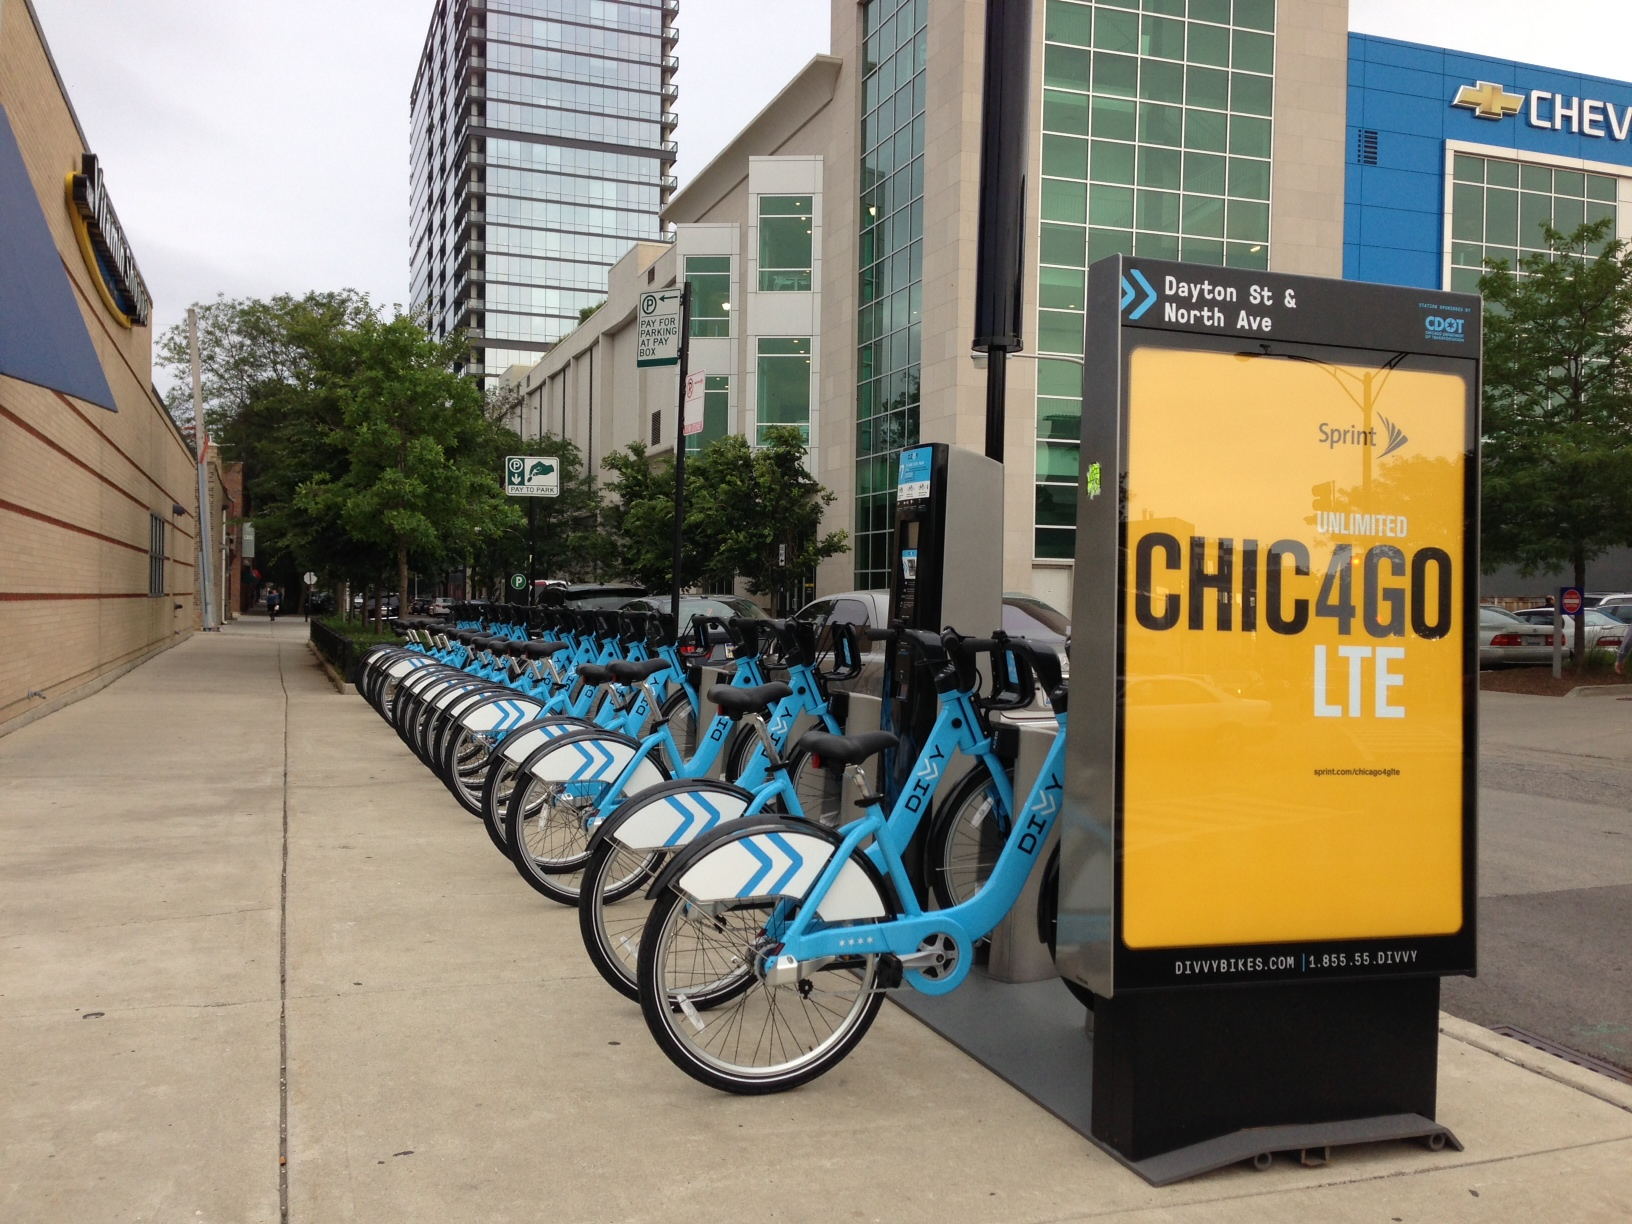 Chicago Residents Go to Court over Rahm's Rental Bikes